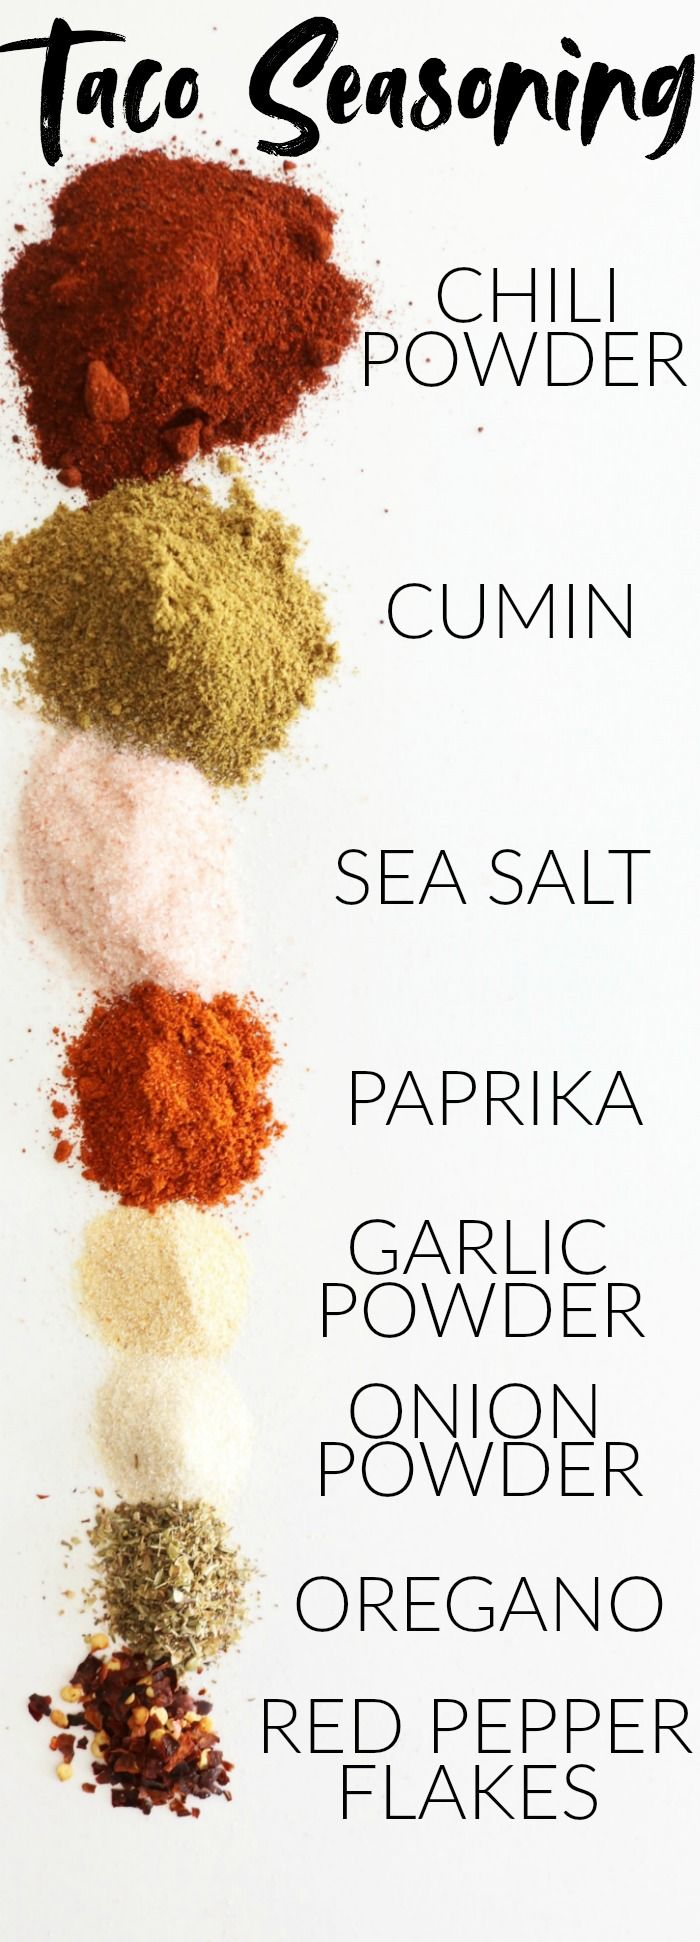 Ditch store bought taco seasoning packets and make your own! Enjoy this super fun and easy DIY homemade taco seasoning recipe! thetoastedpinenut.com #taco #tacoseasoning #healthy #diy #homemade #recipe